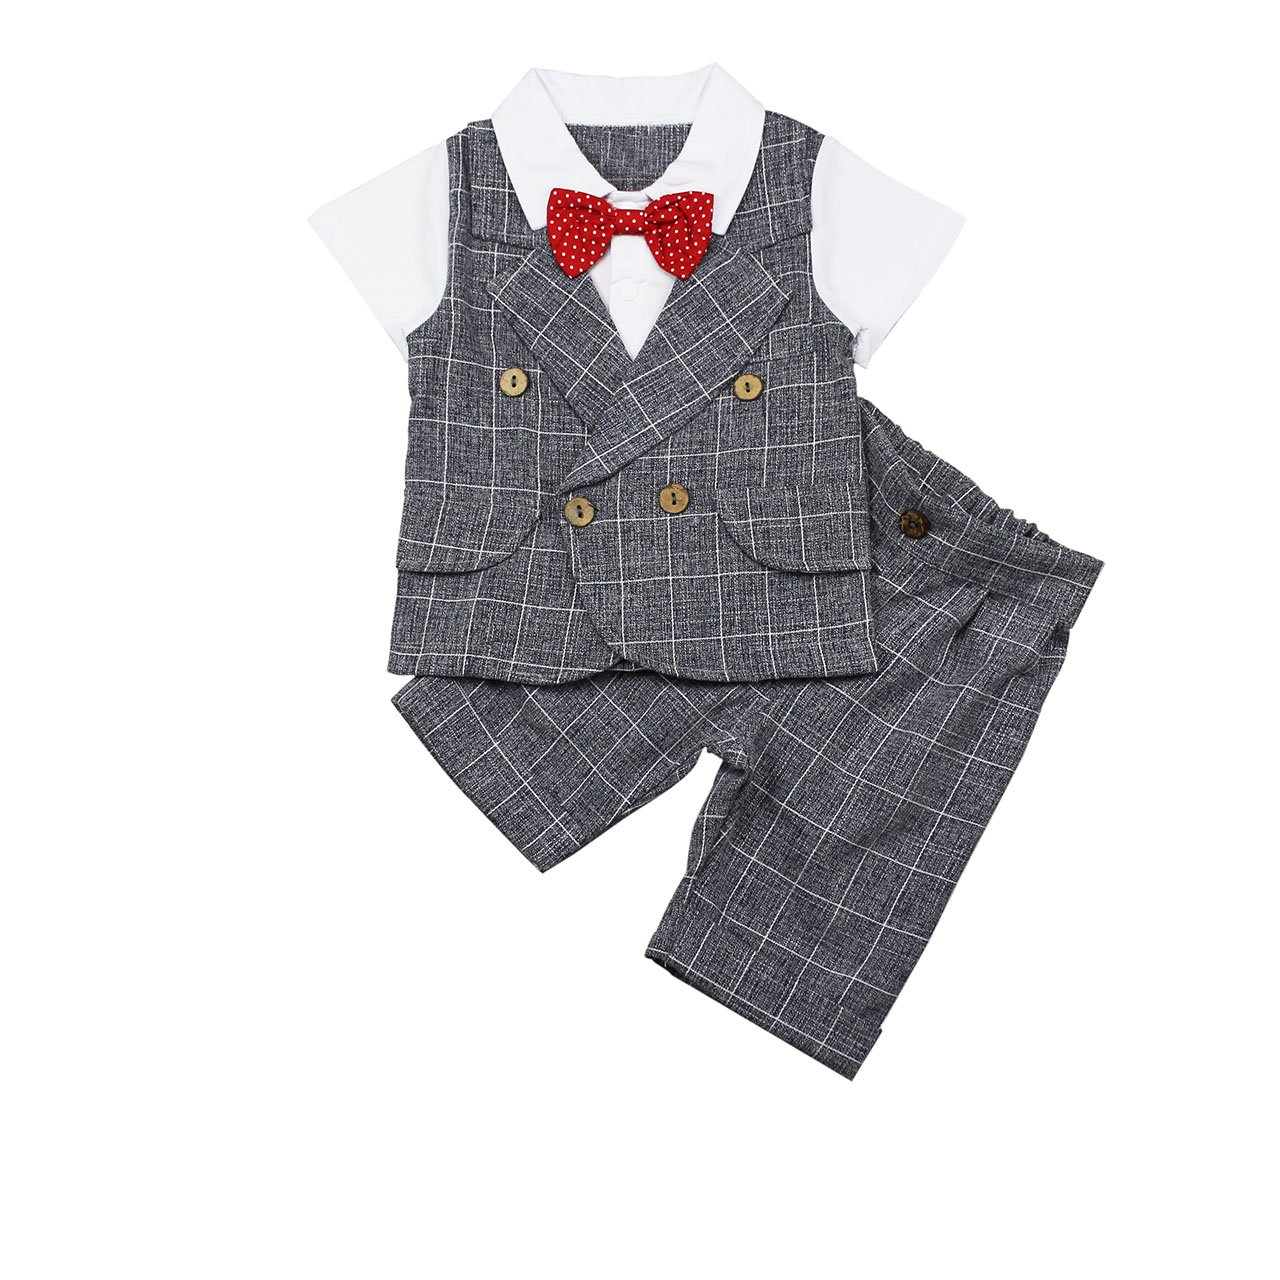 2 Birthday Party Dress For 1 Year Old Baby Boy Review Outfit 2pcs Kids Gentleman Short Sleeve Suit Set With Plaid Shorts Pants Bowtie